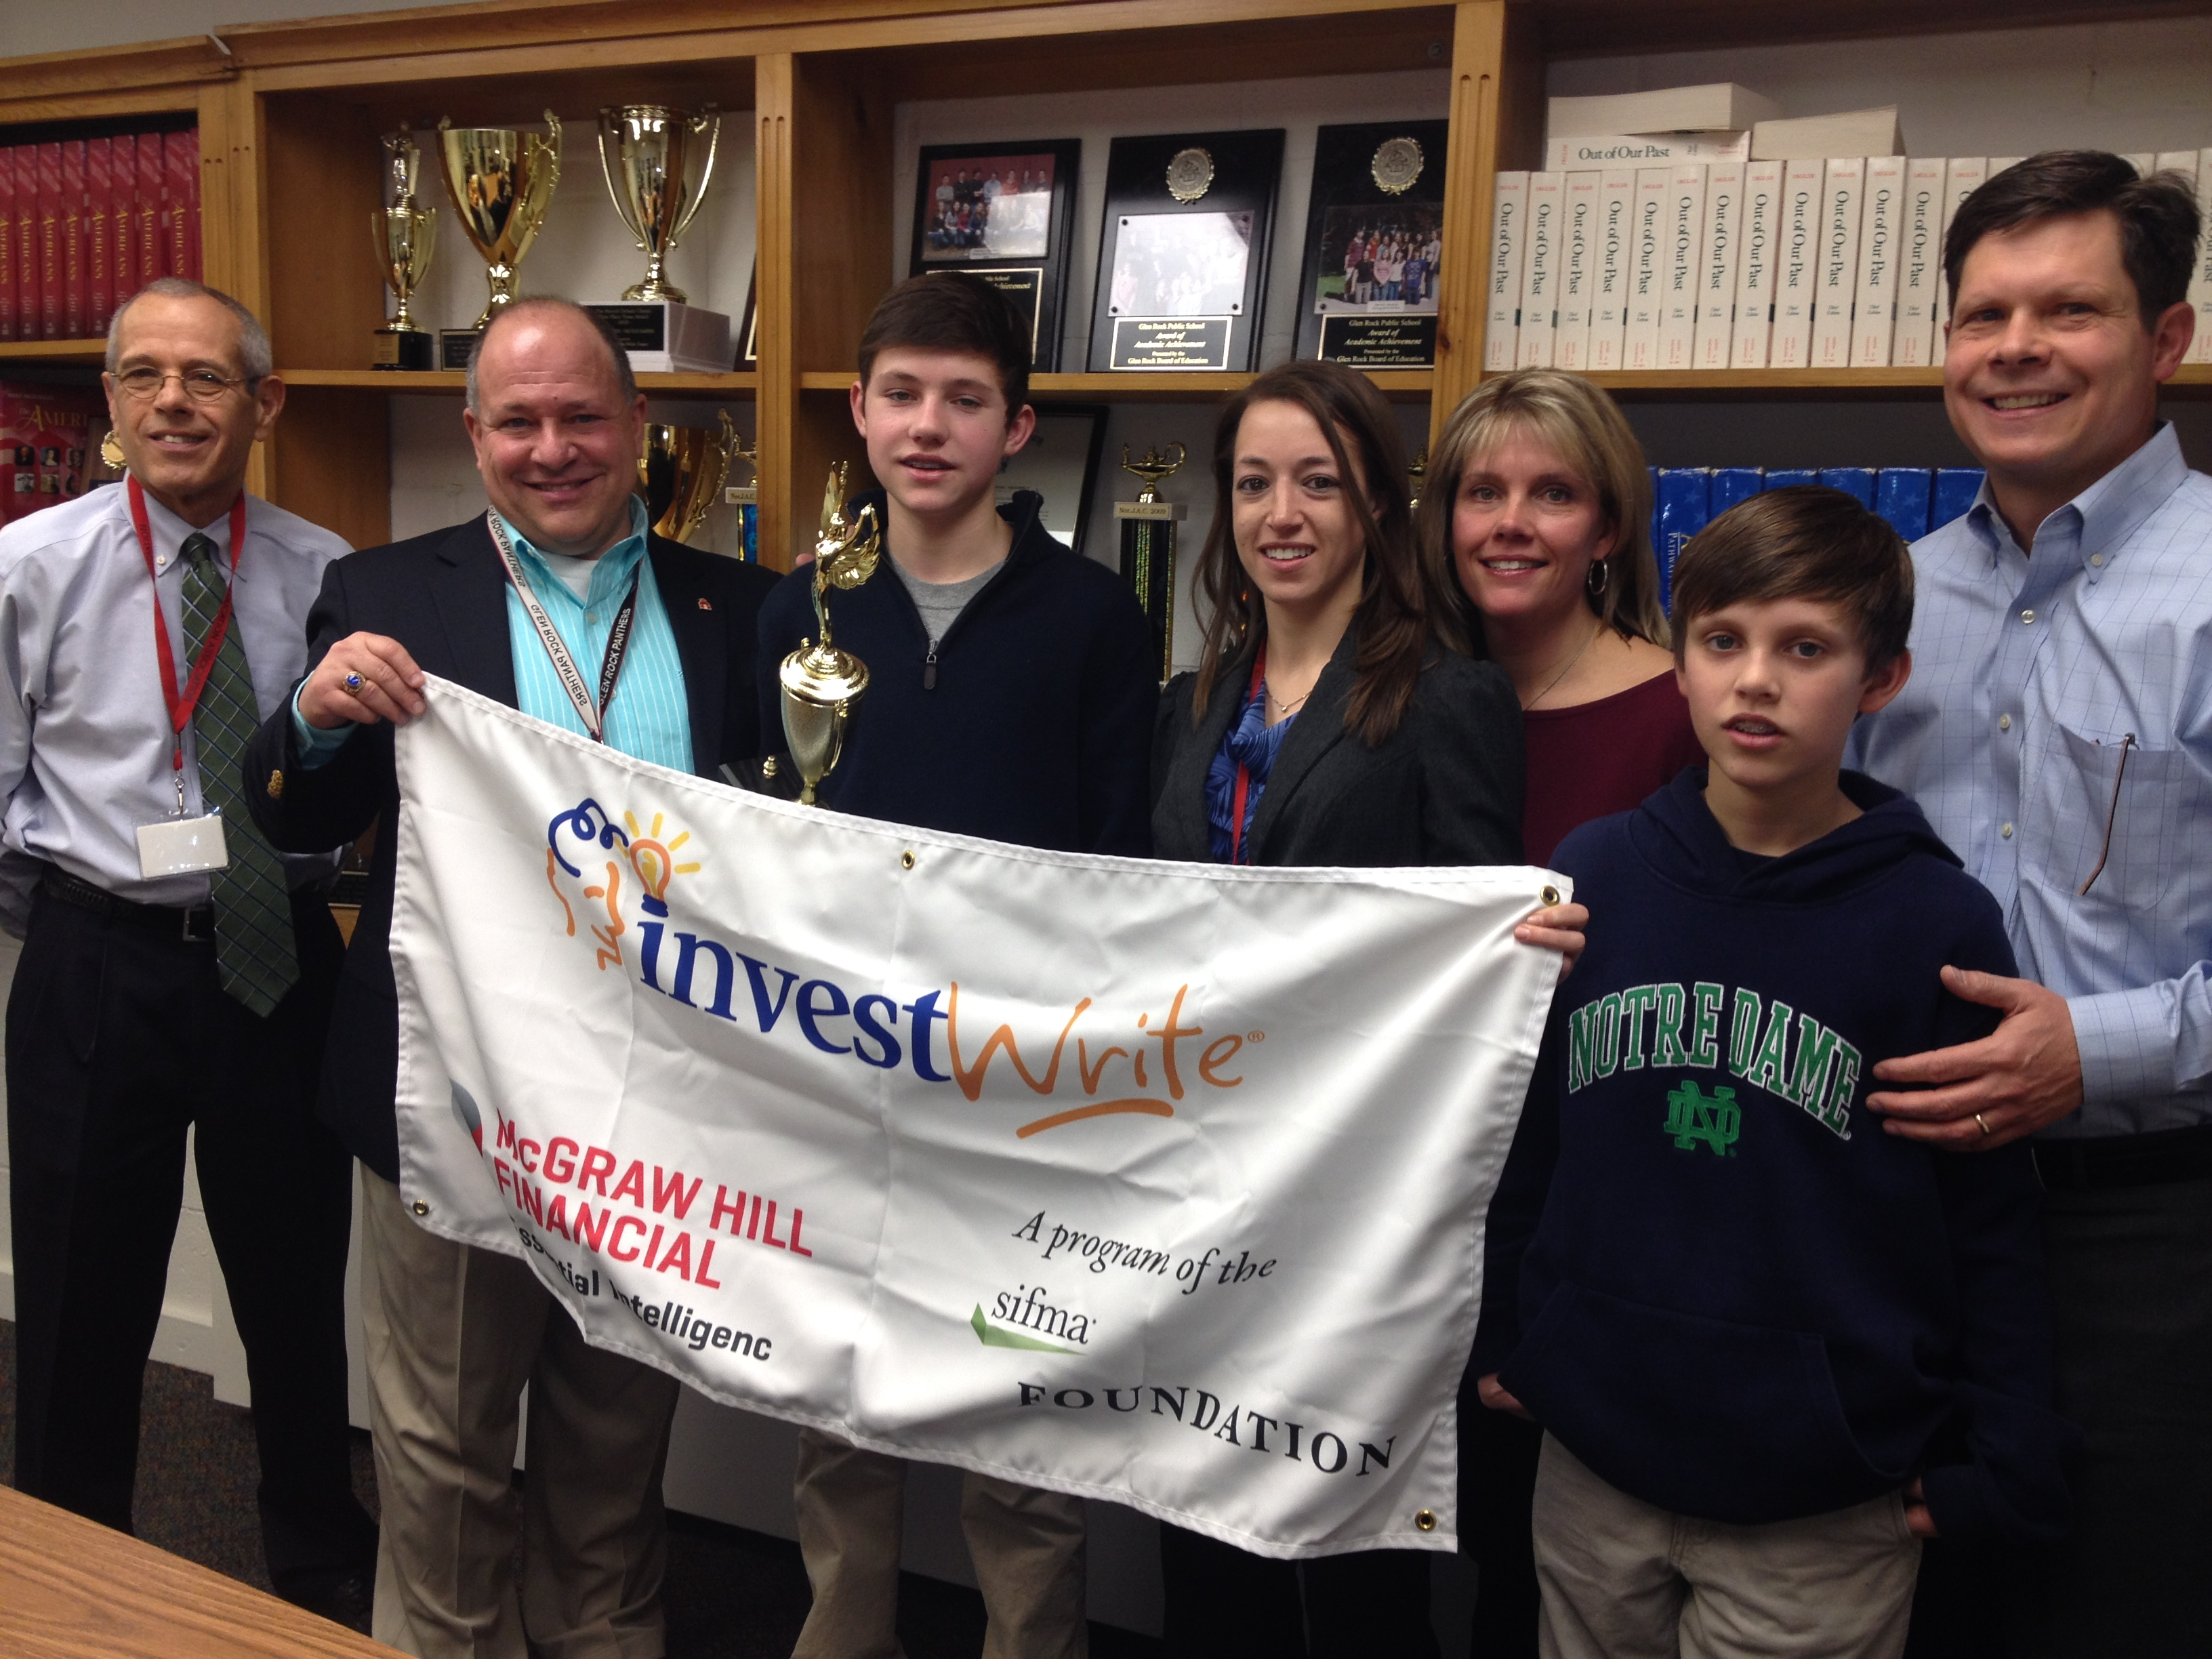 foundation and mcgraw hill financial announce new jersey investwrite fall 2013 winner nj